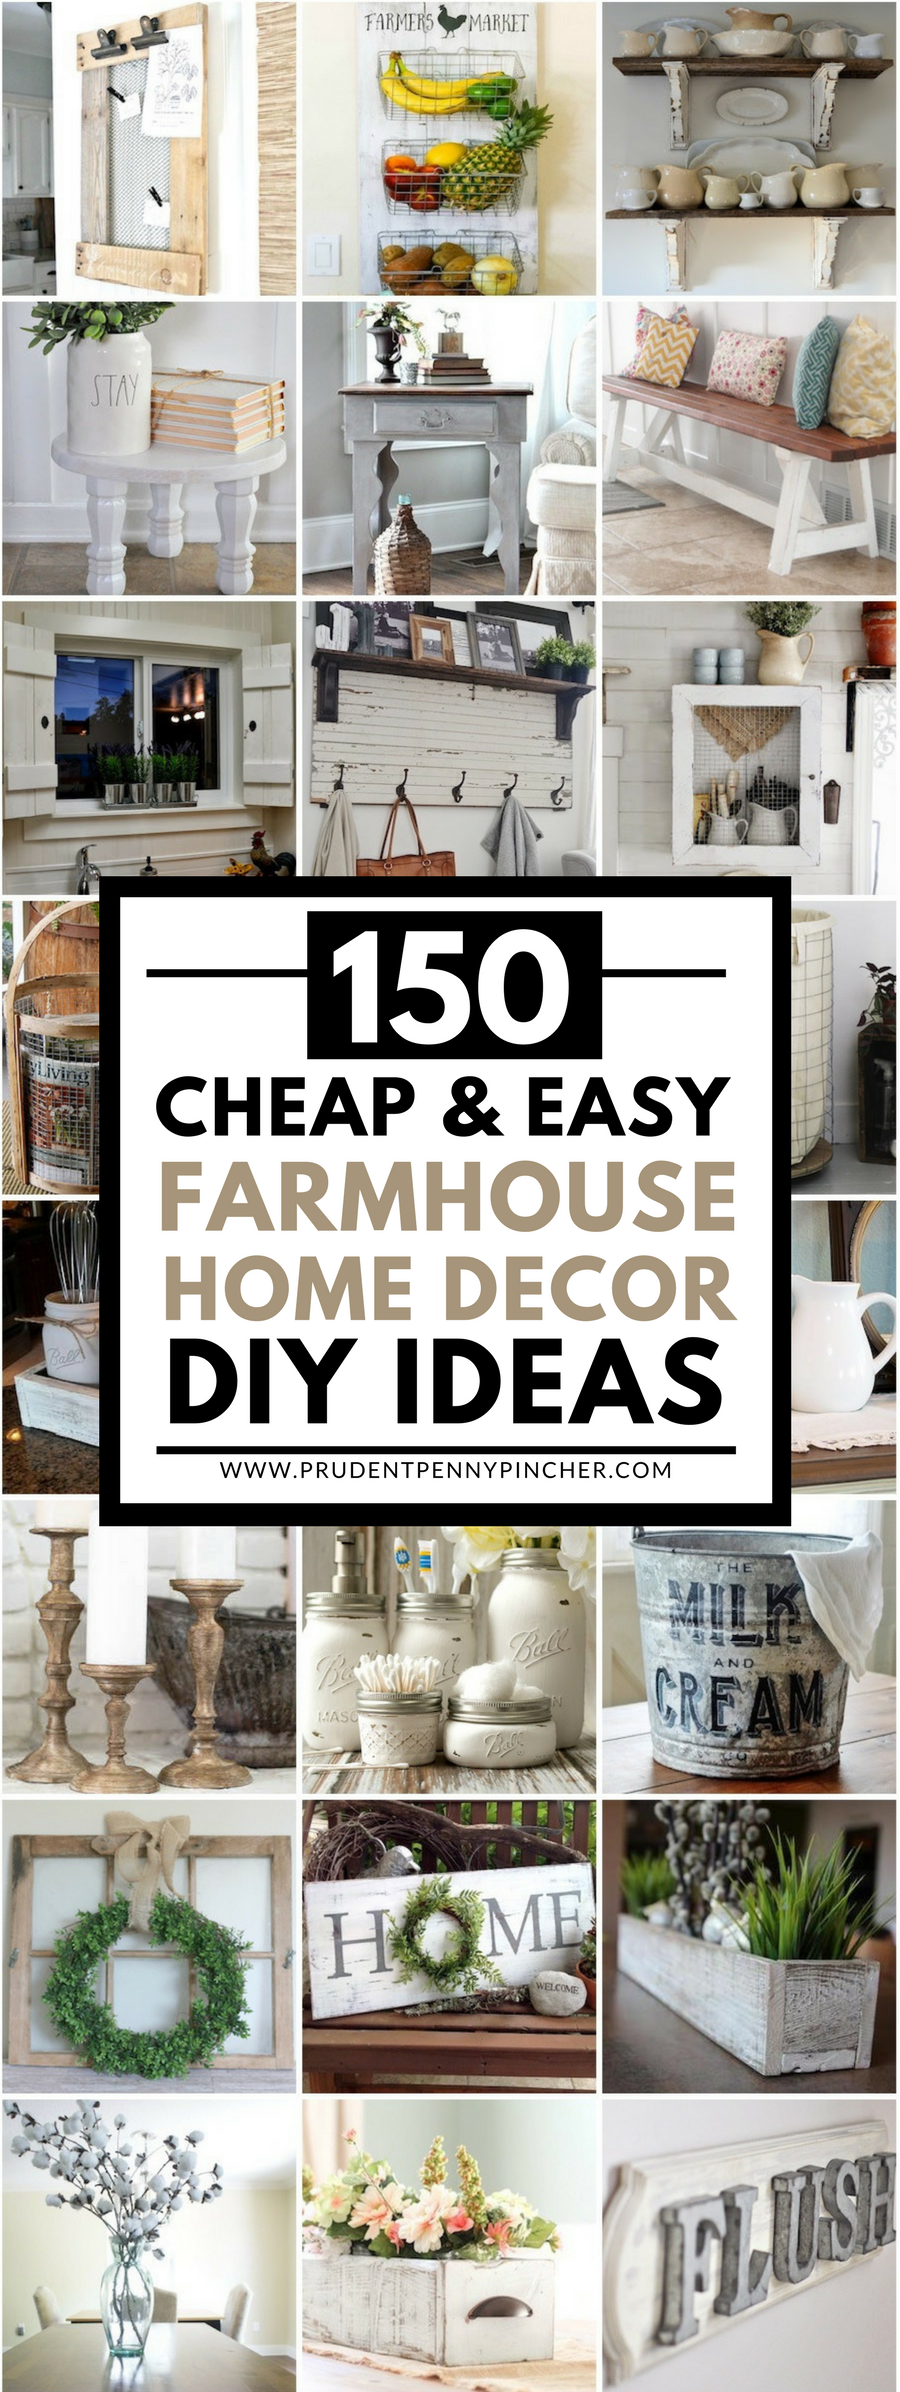 150 Cheap and Easy DIY Farmhouse Decor Ideas Farmhouse